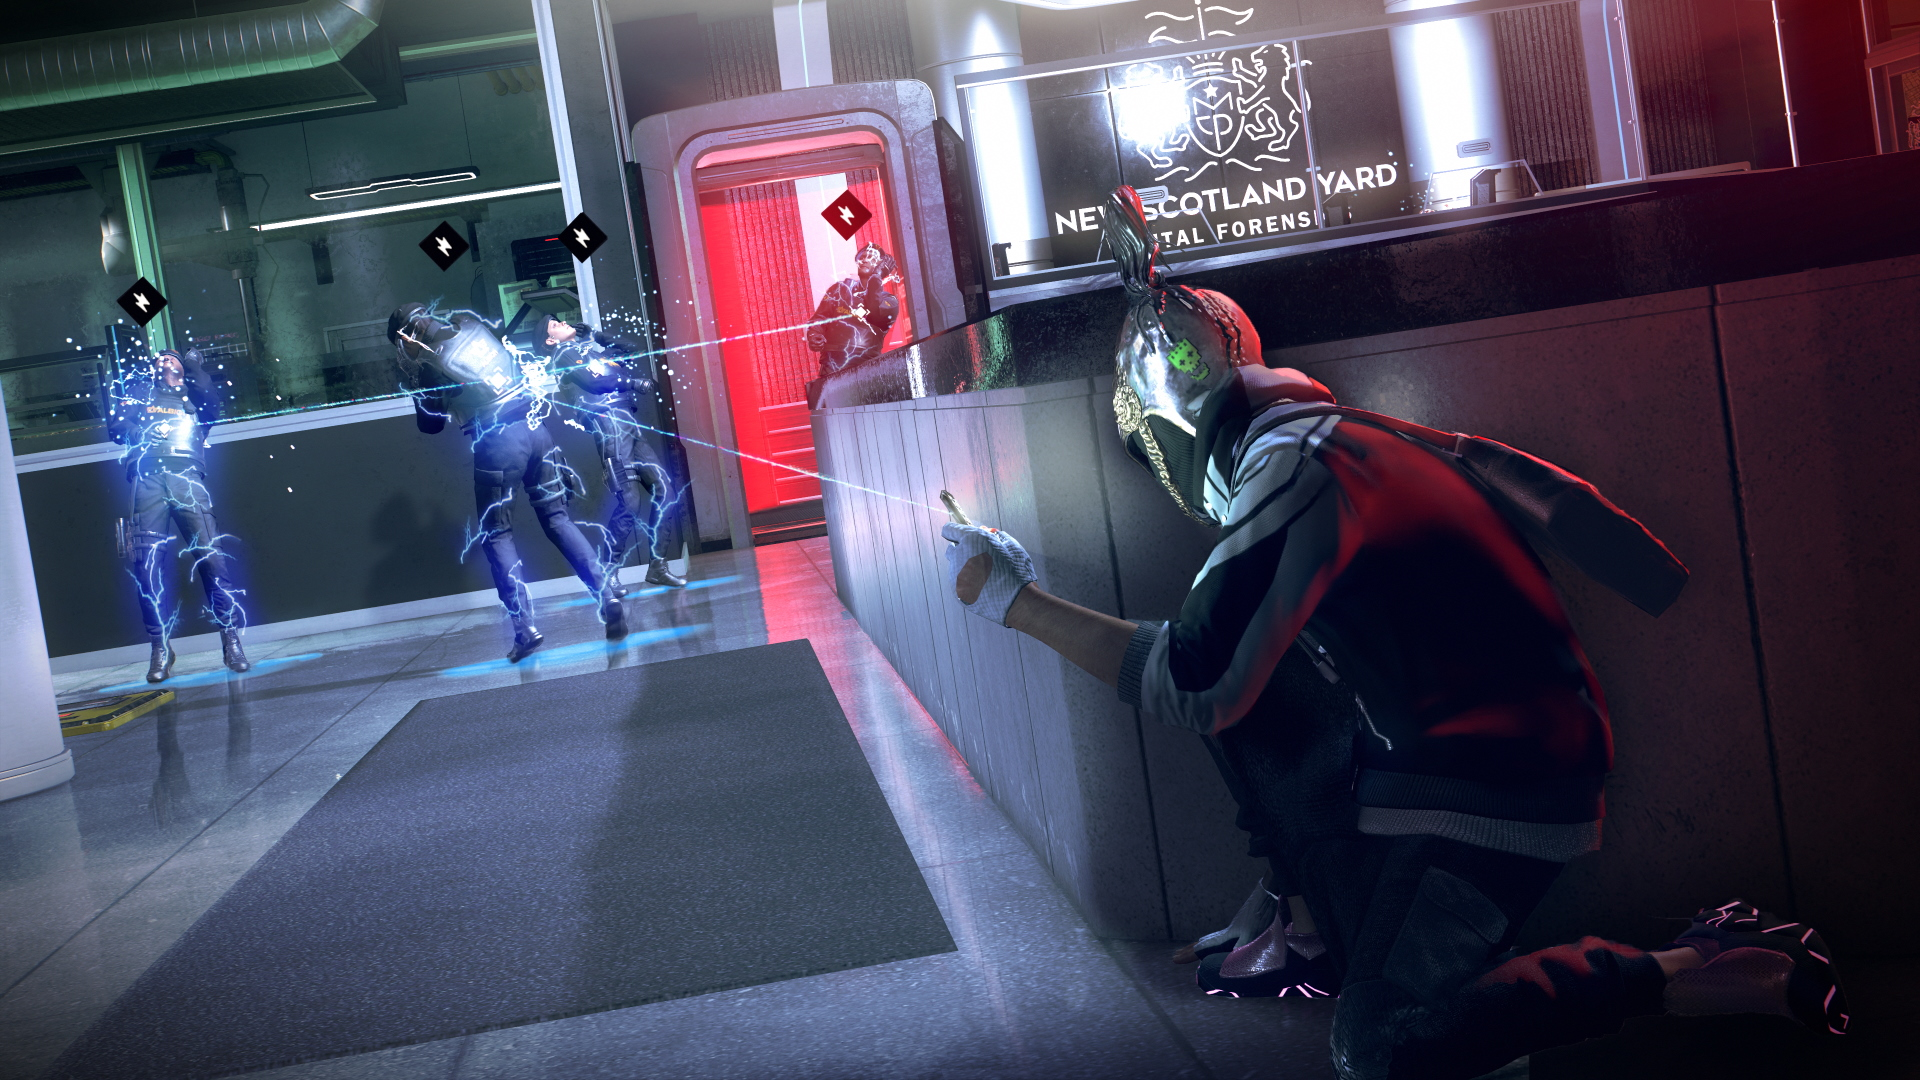 Watch Dogs Legion is great fun, but it's tonally all over the place